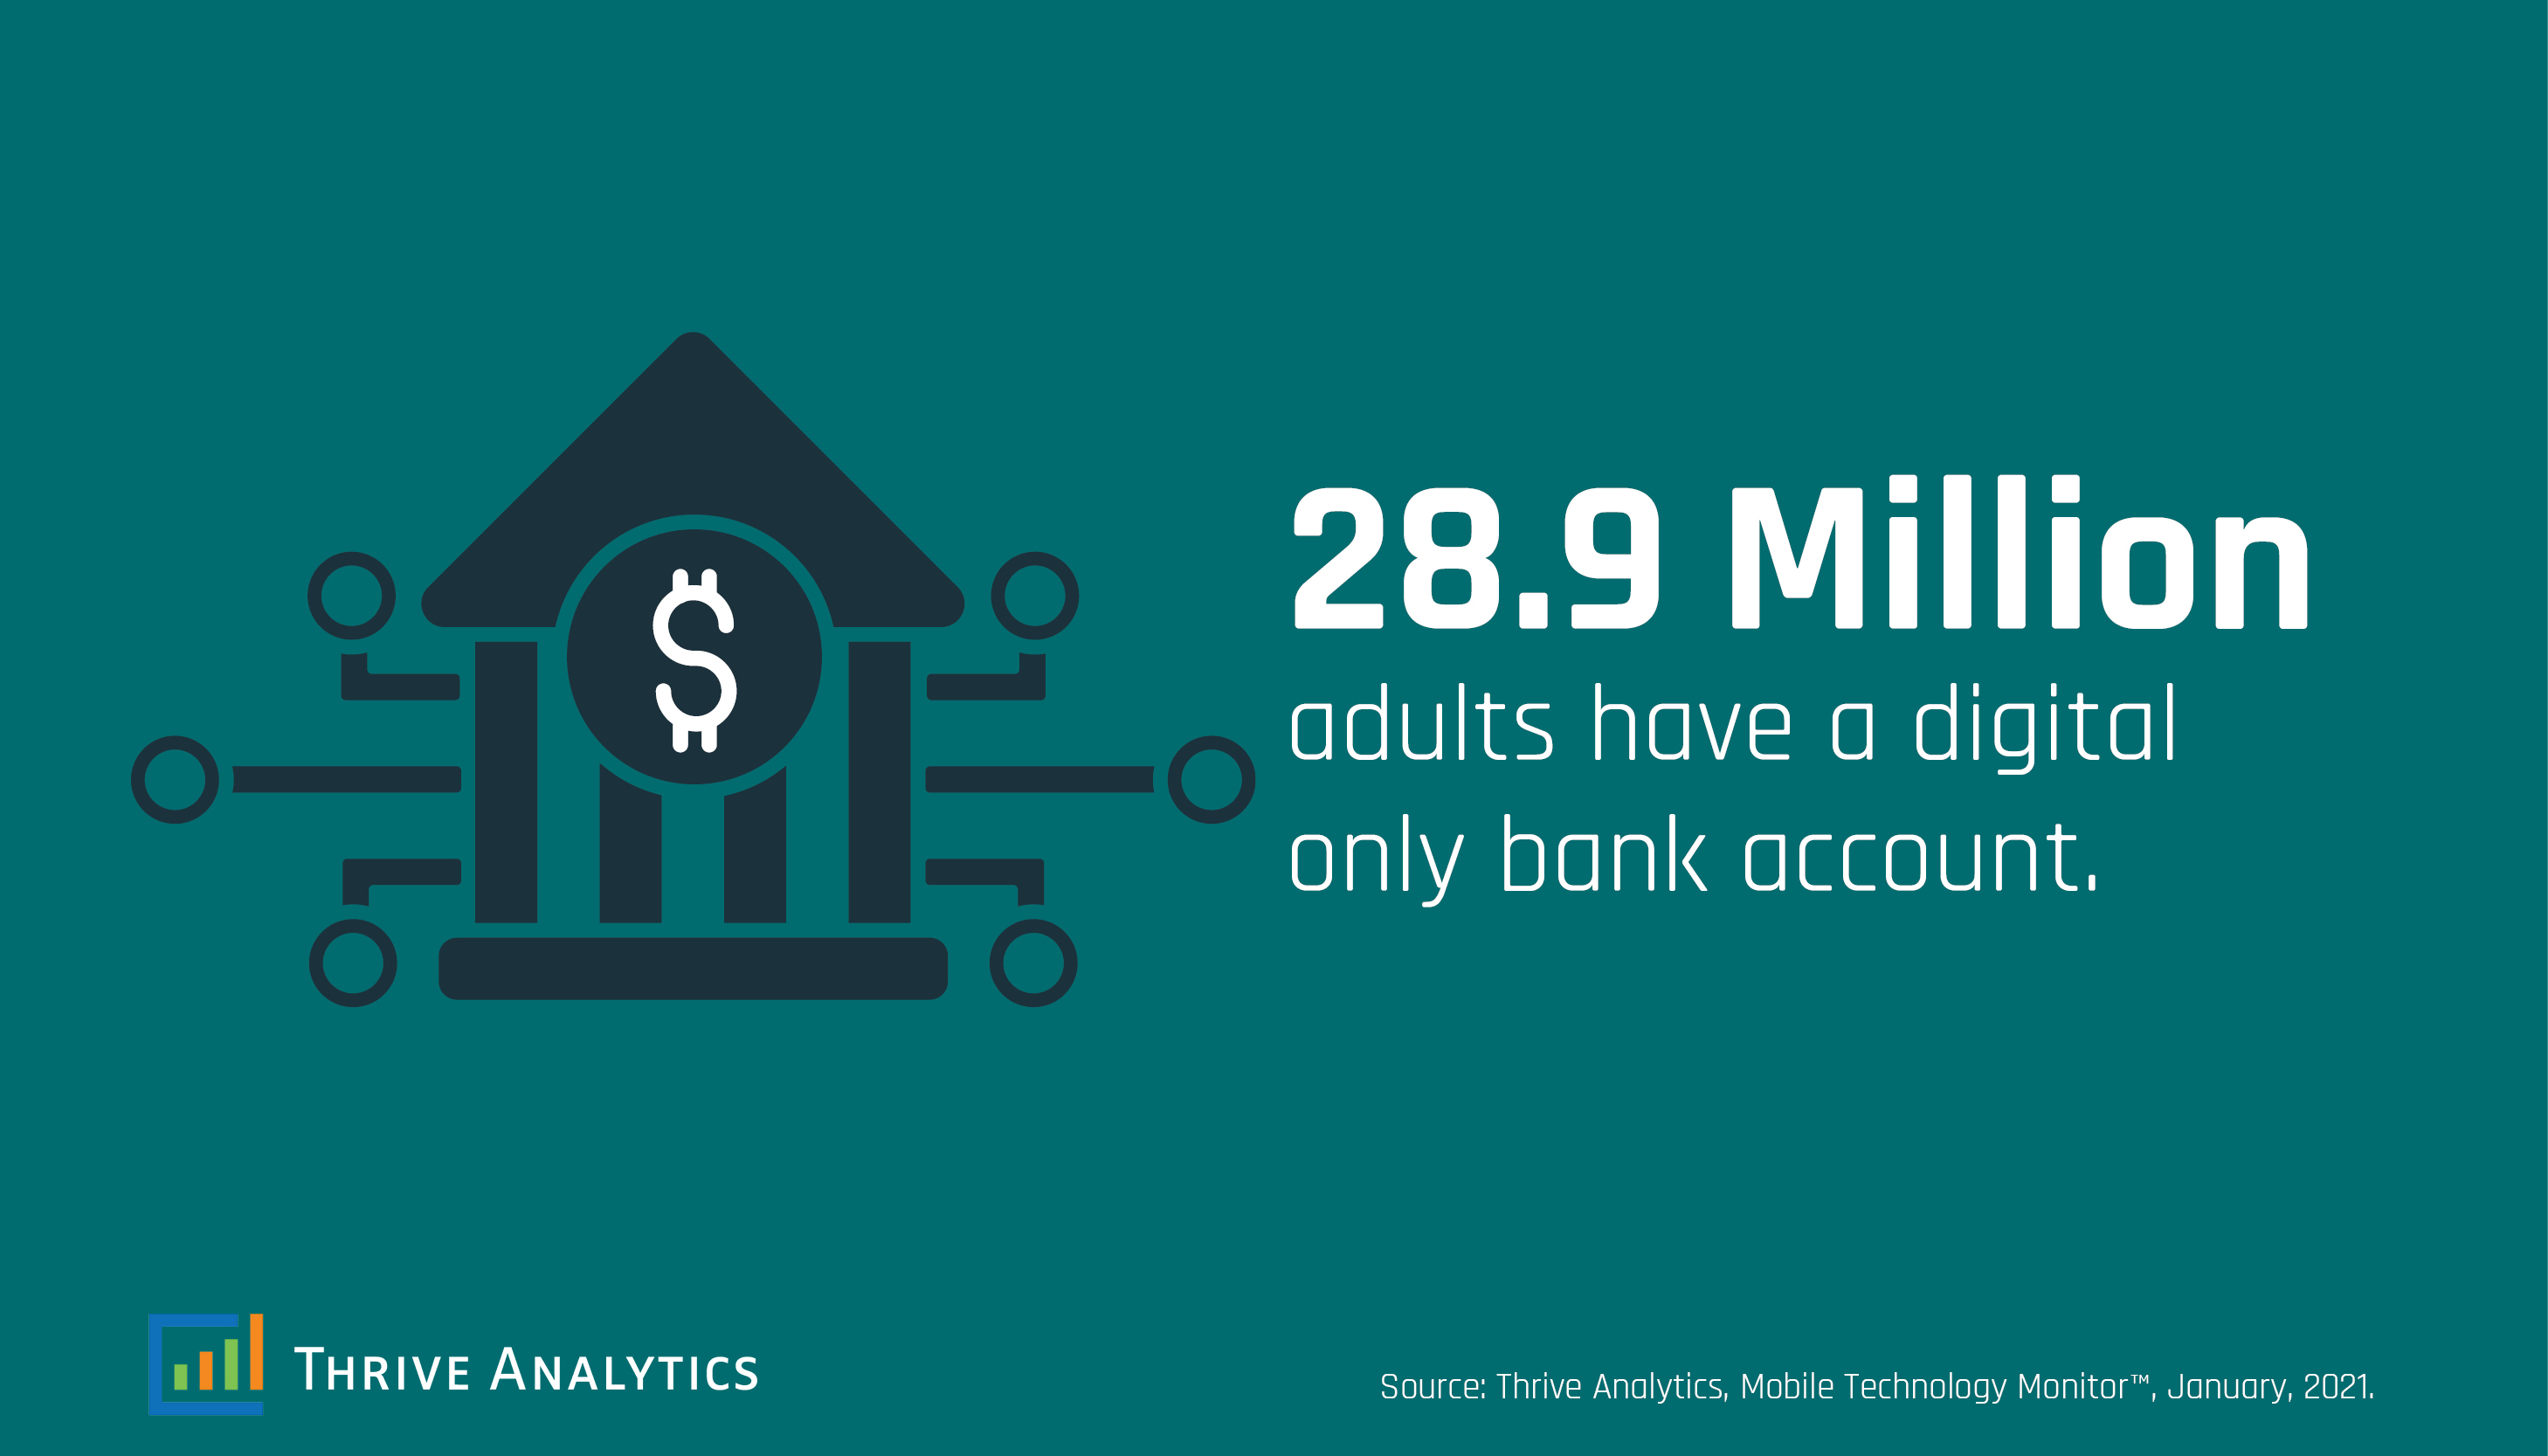 Digital Only Bank Account Users